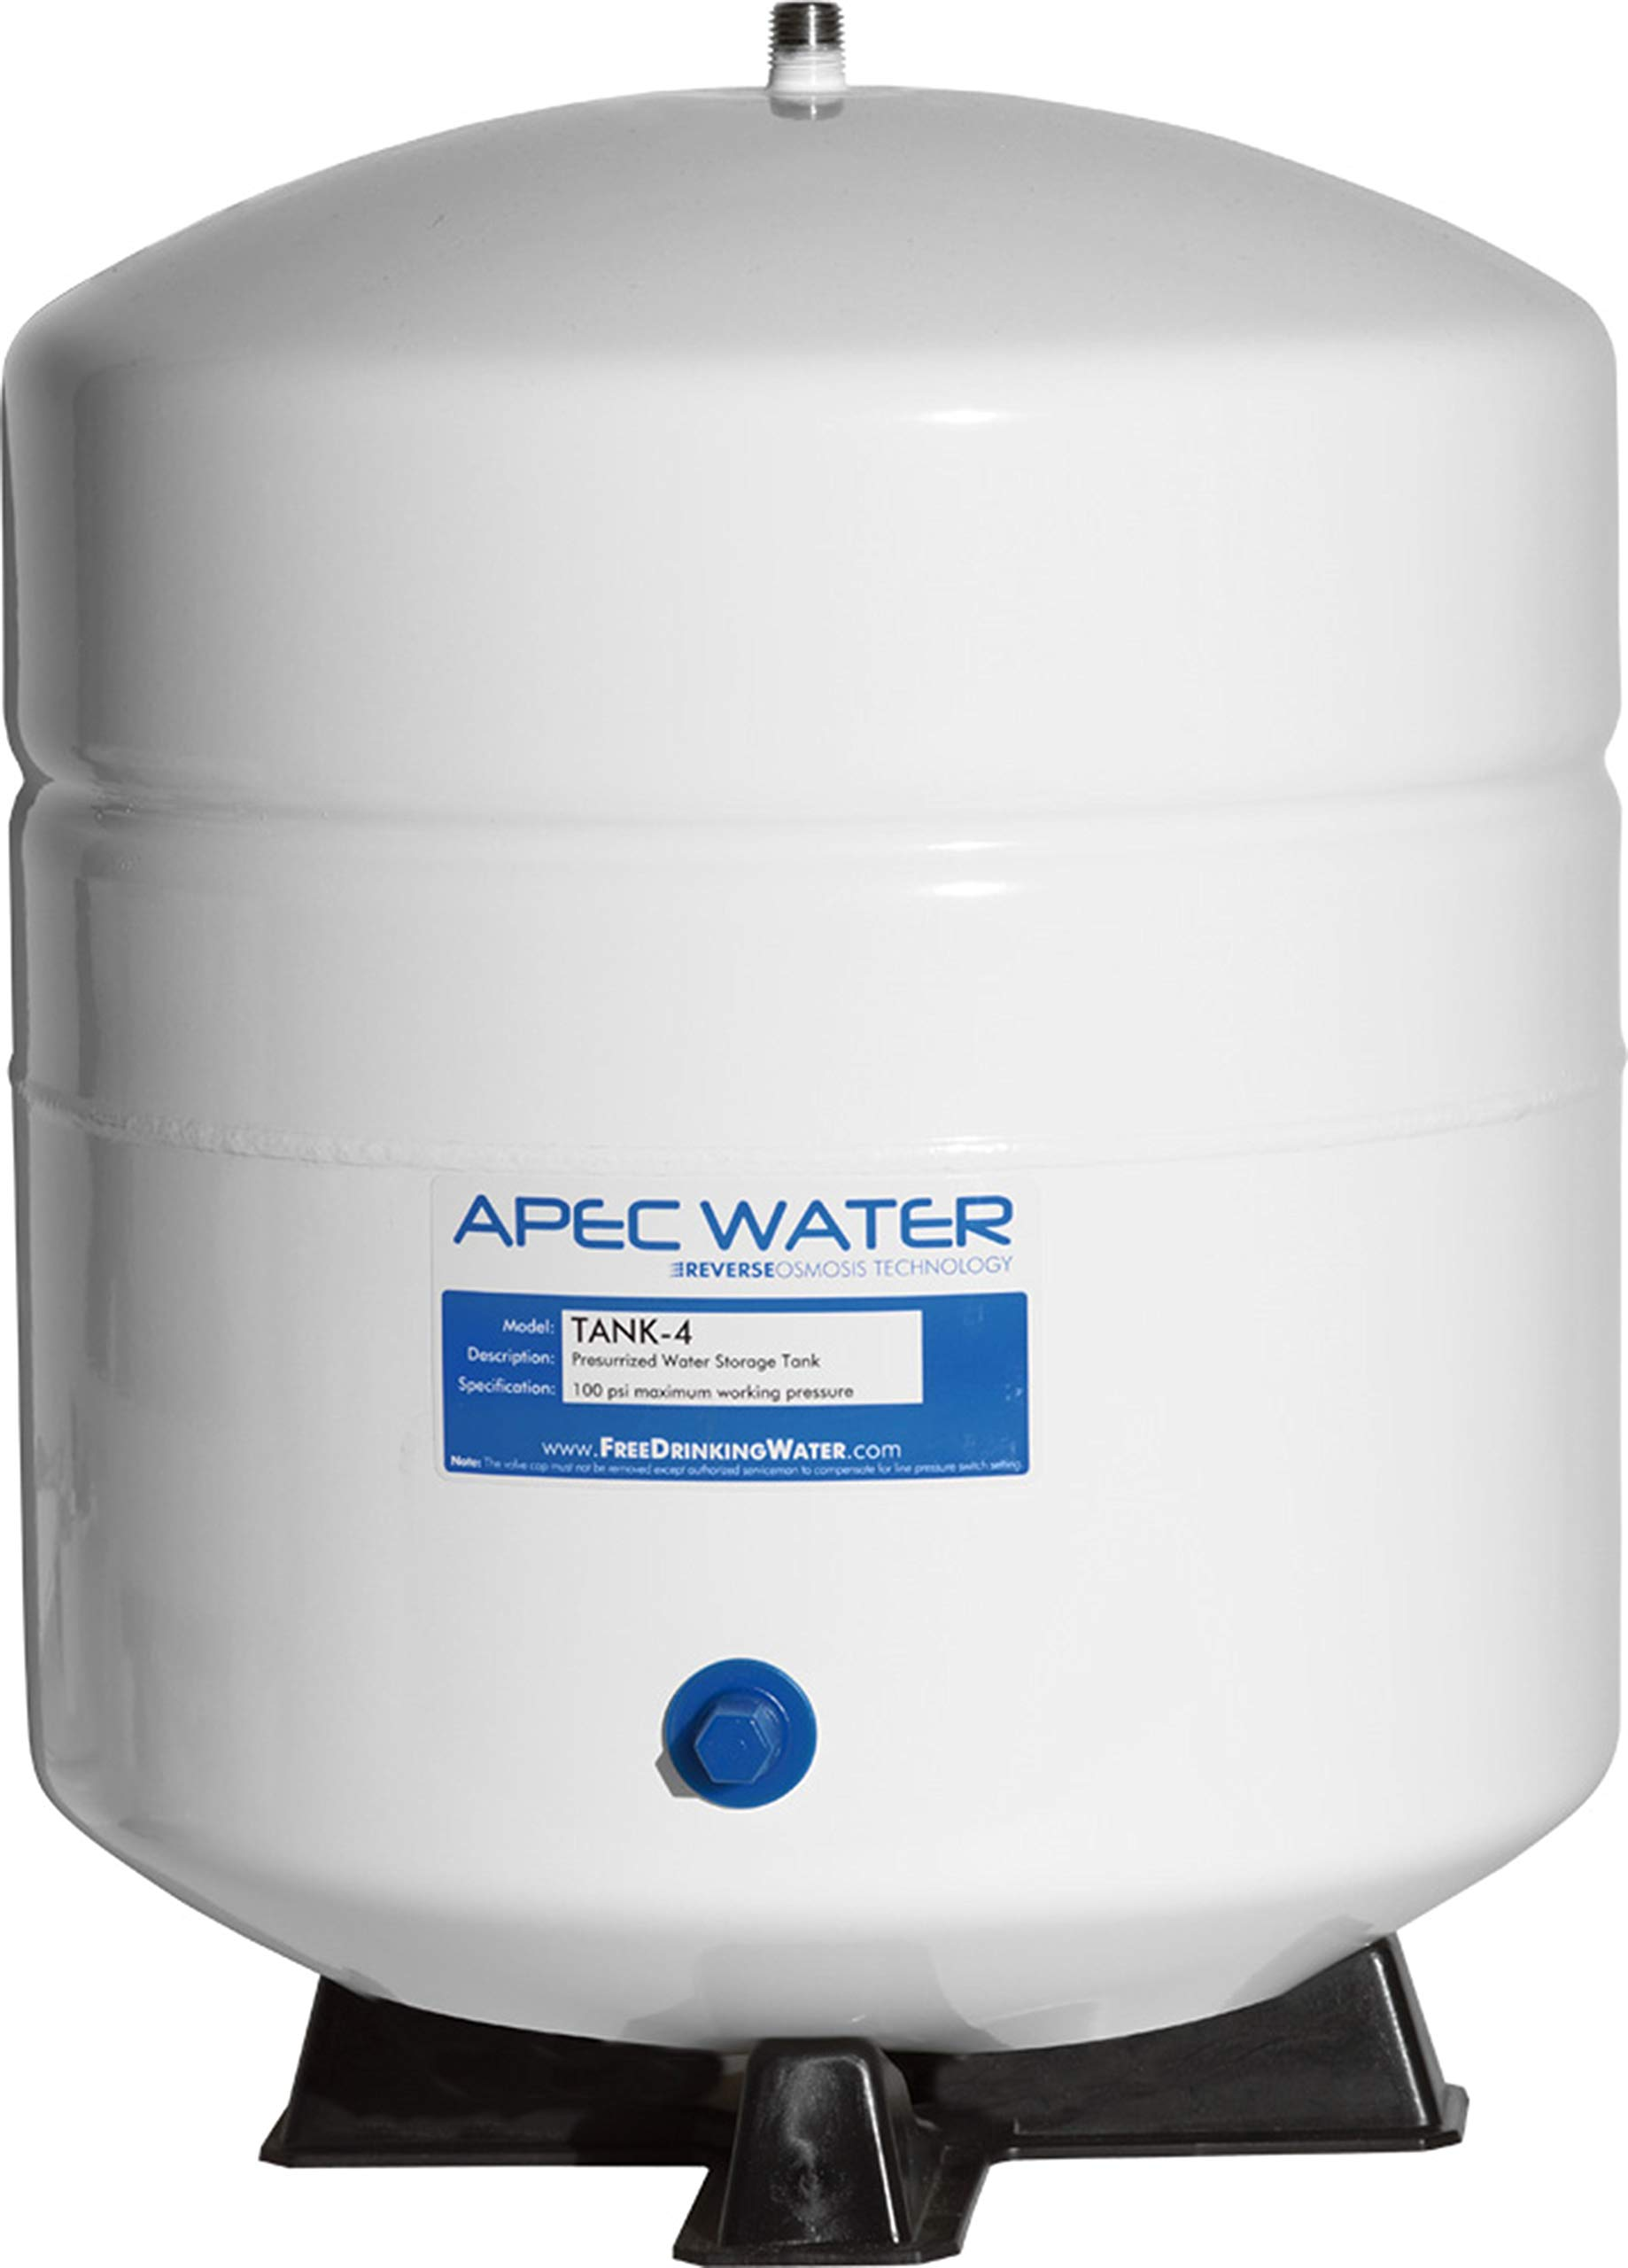 APEC Water Systems TANK-4 4 Gallon Residential Pre-Pressurized Reverse Osmosis Water Storage Tank by APEC Water Systems